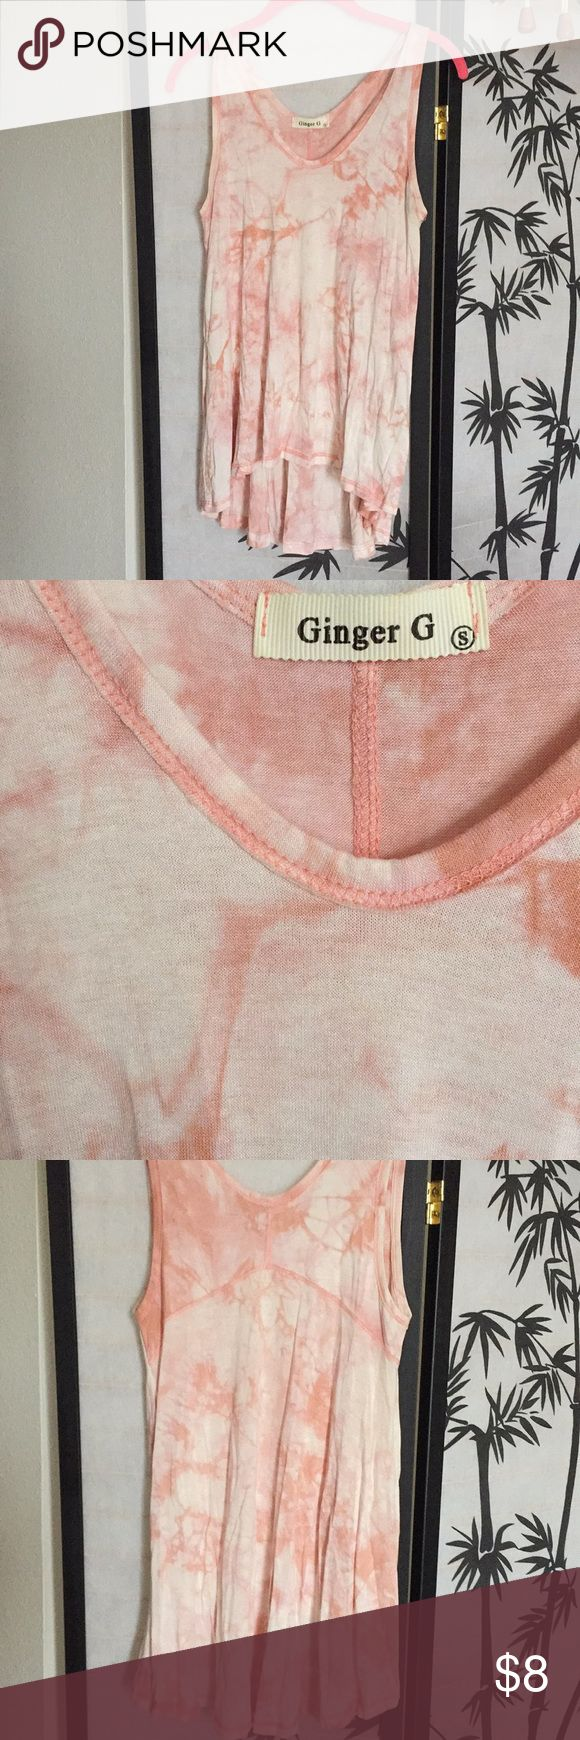 Ginger G boho tie dye pink top. Never Worn! Usher in a boho chic look in this pretty pink tie dye tank! Perfect to pair with leggings or jeans! Ginger G Tops Tank Tops